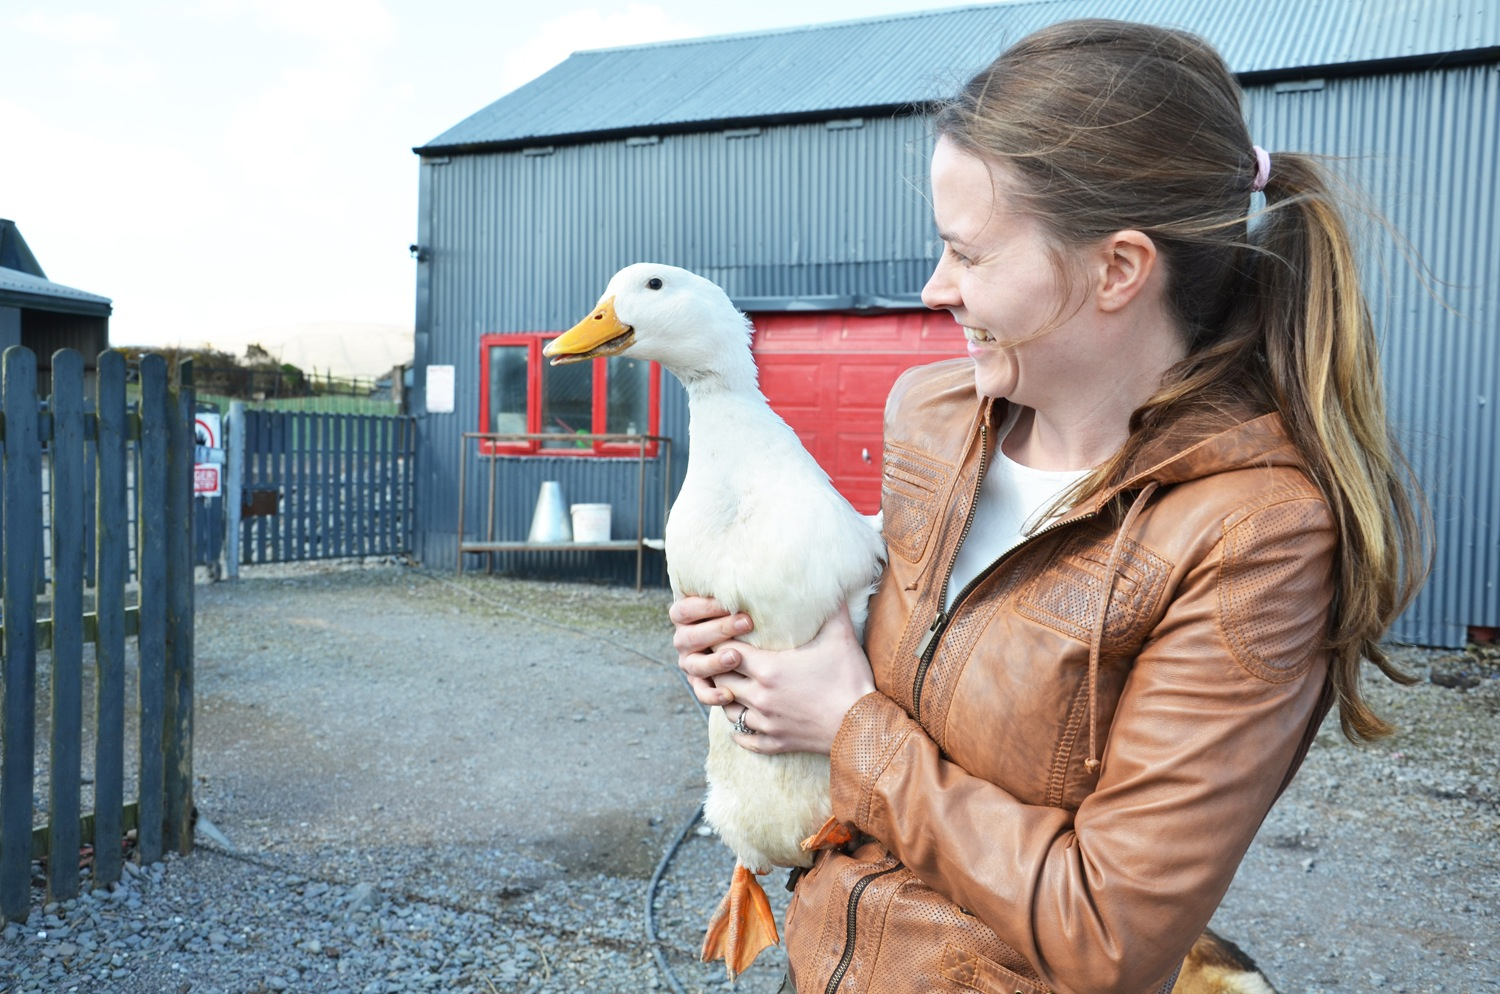 Supplier Focus: O'Connell's Poultry Farm